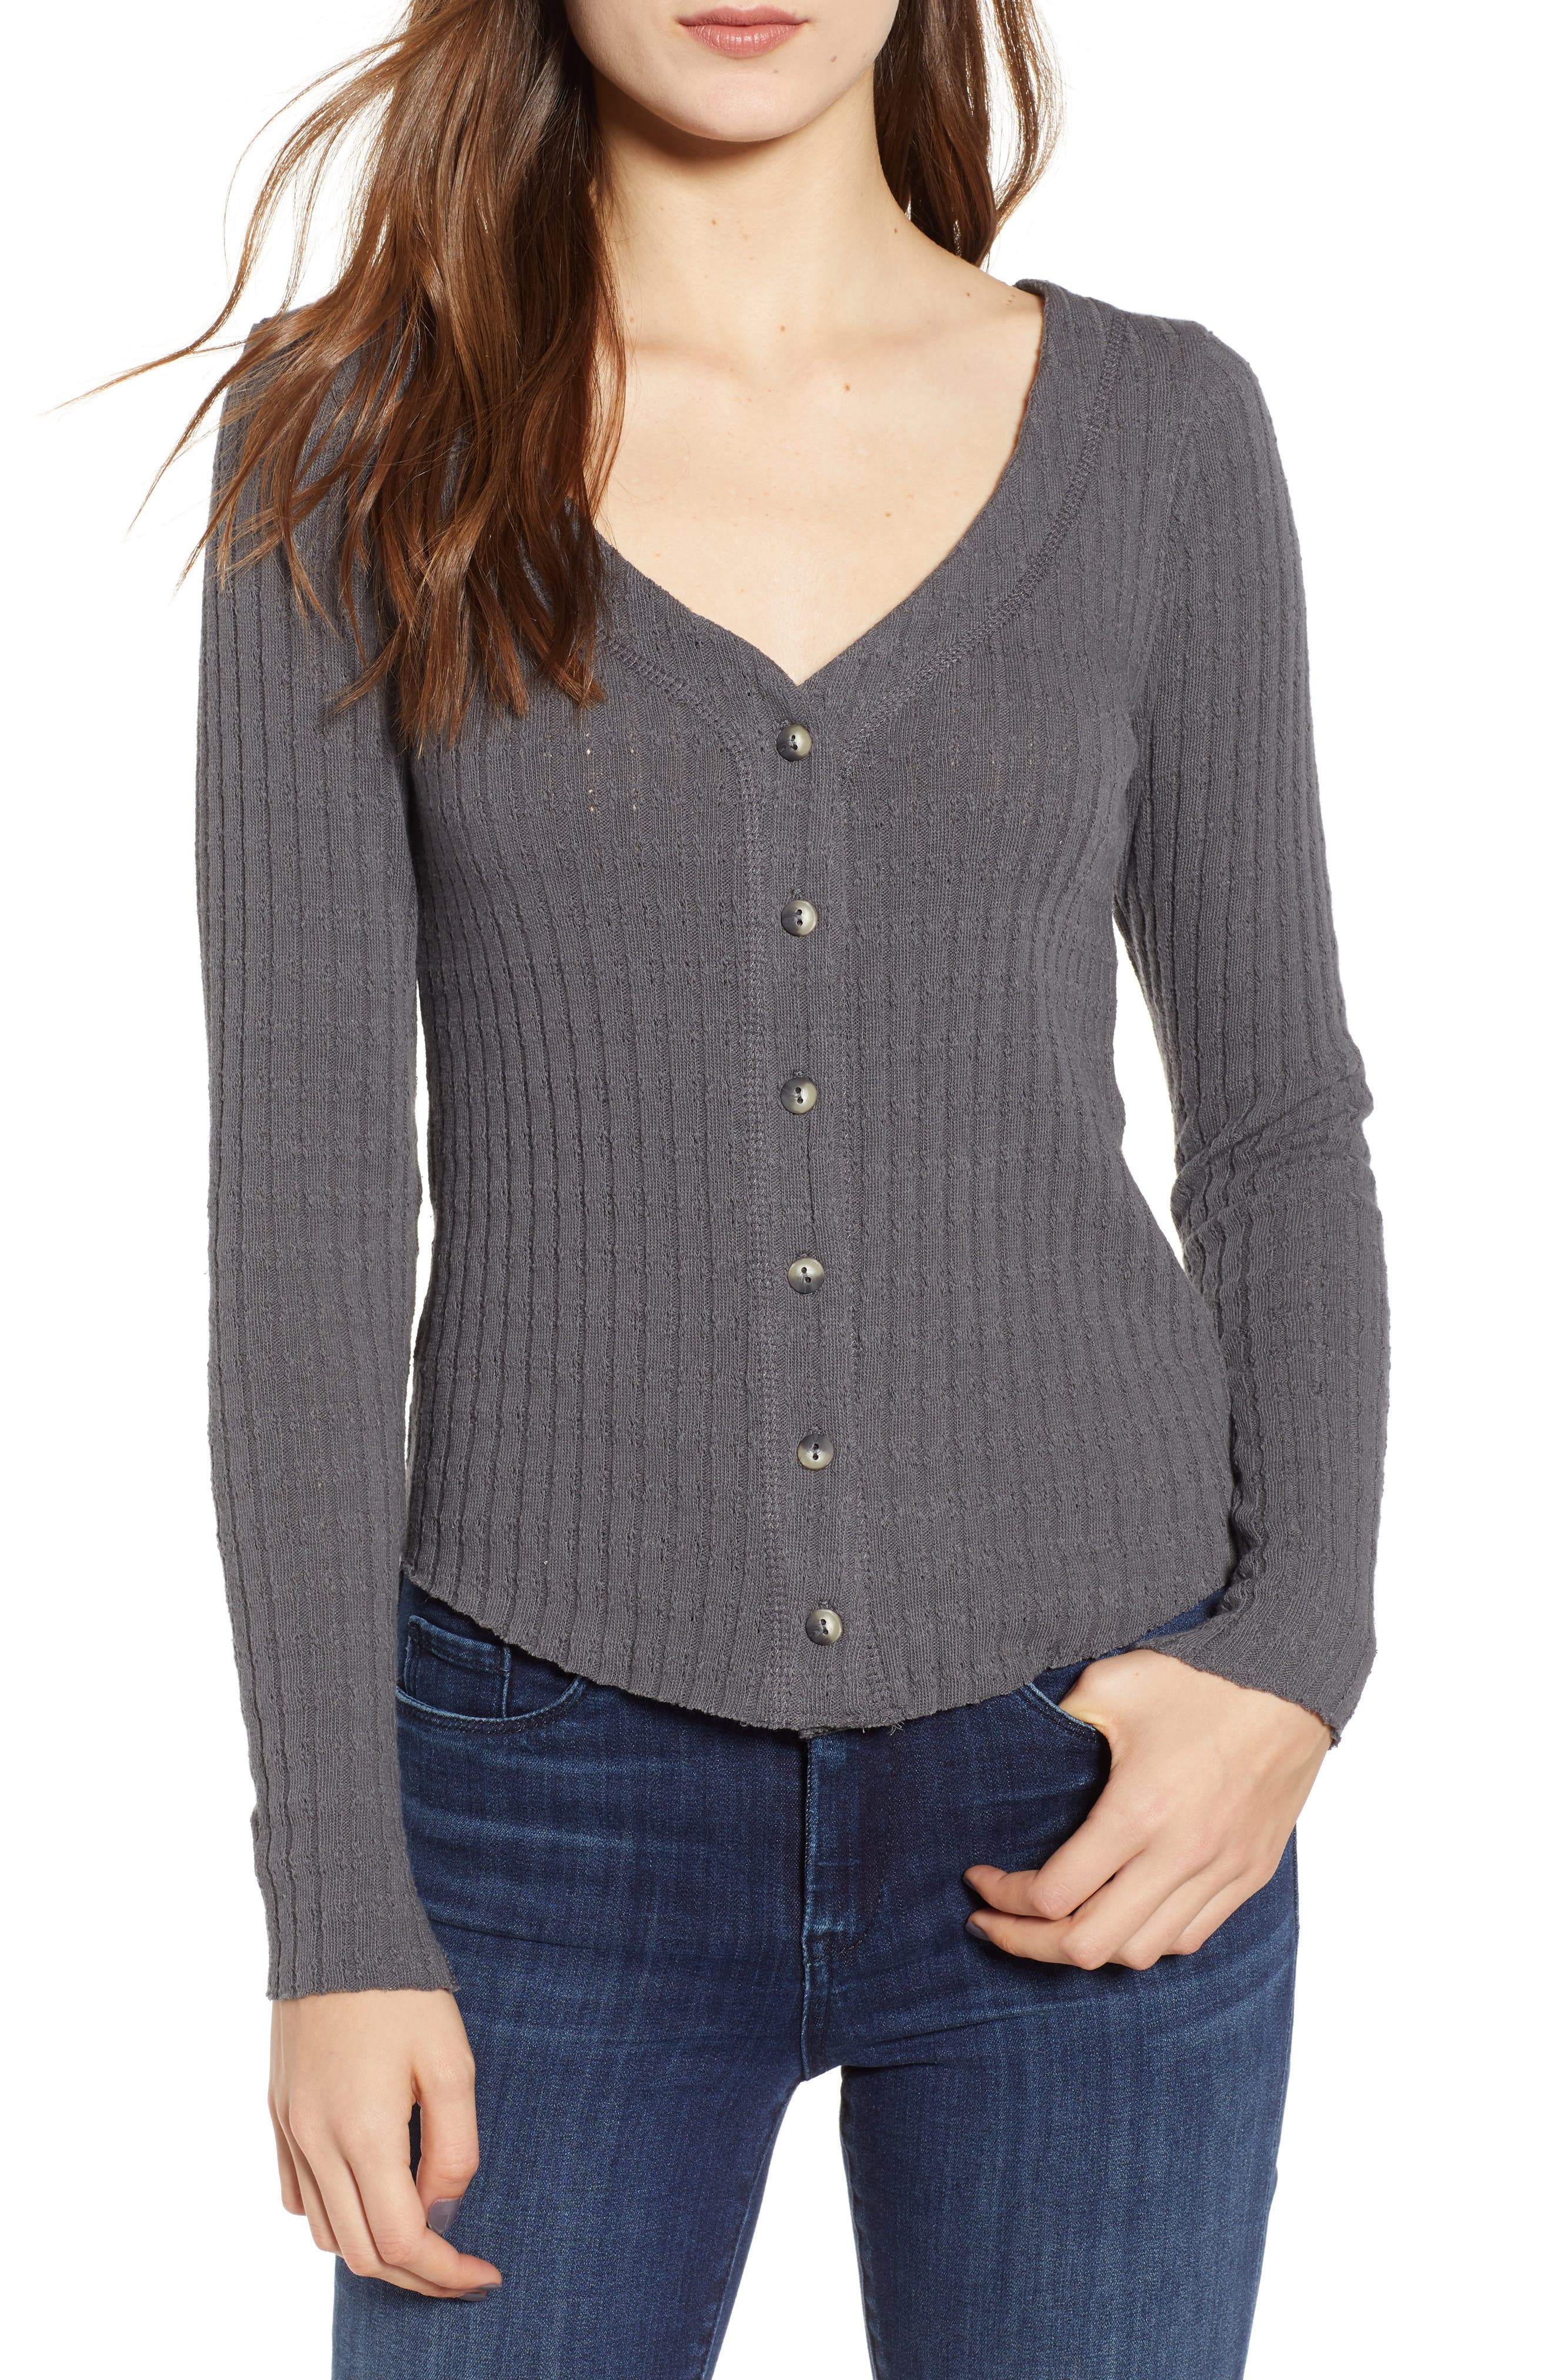 Lotta Love Button Front Top,                         Main,                         color, CHARCOAL